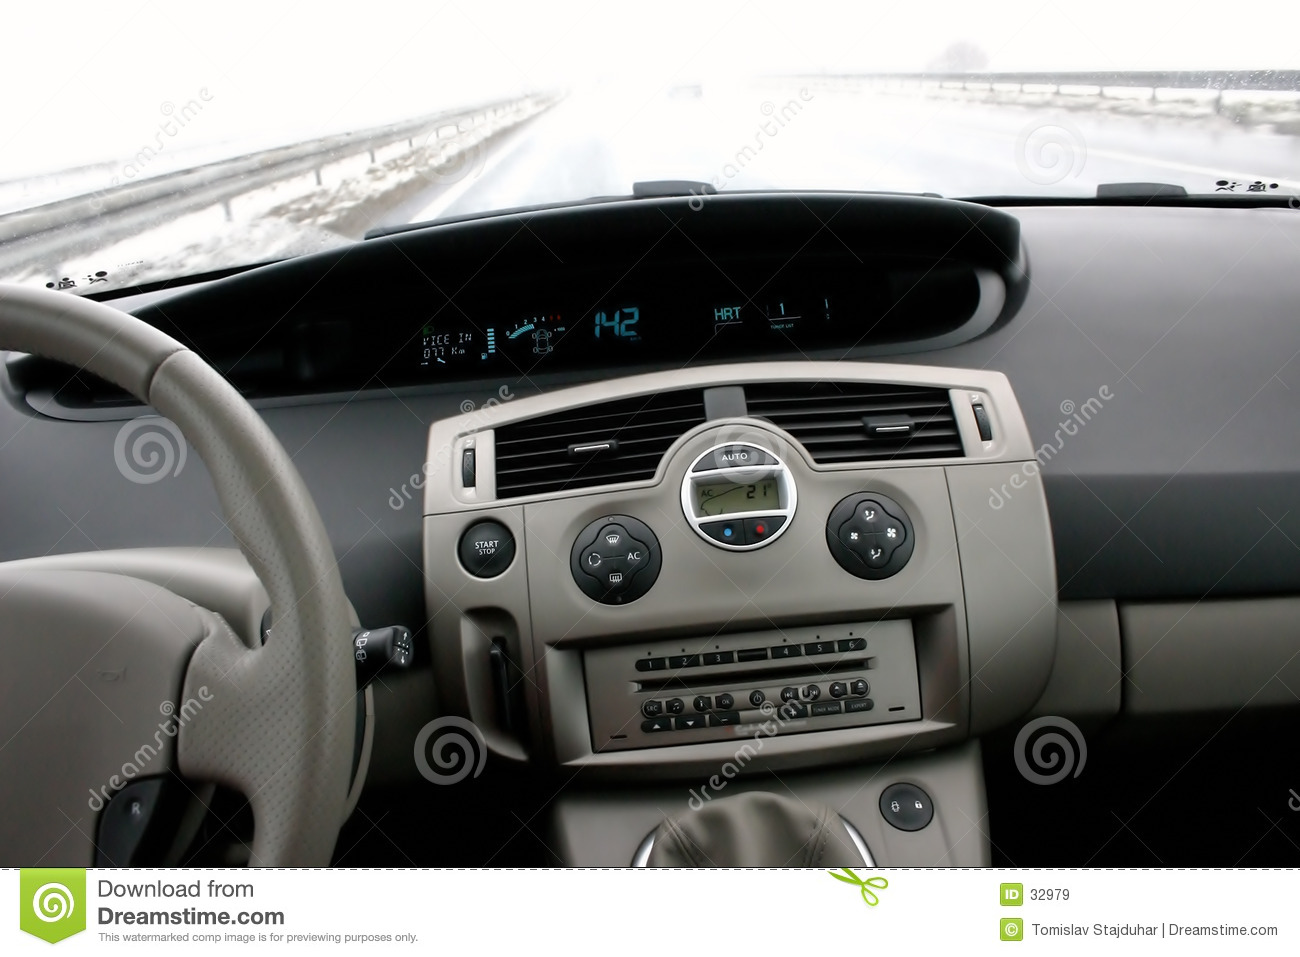 Renault scenic ii on highway royalty free stock images for Interieur voiture